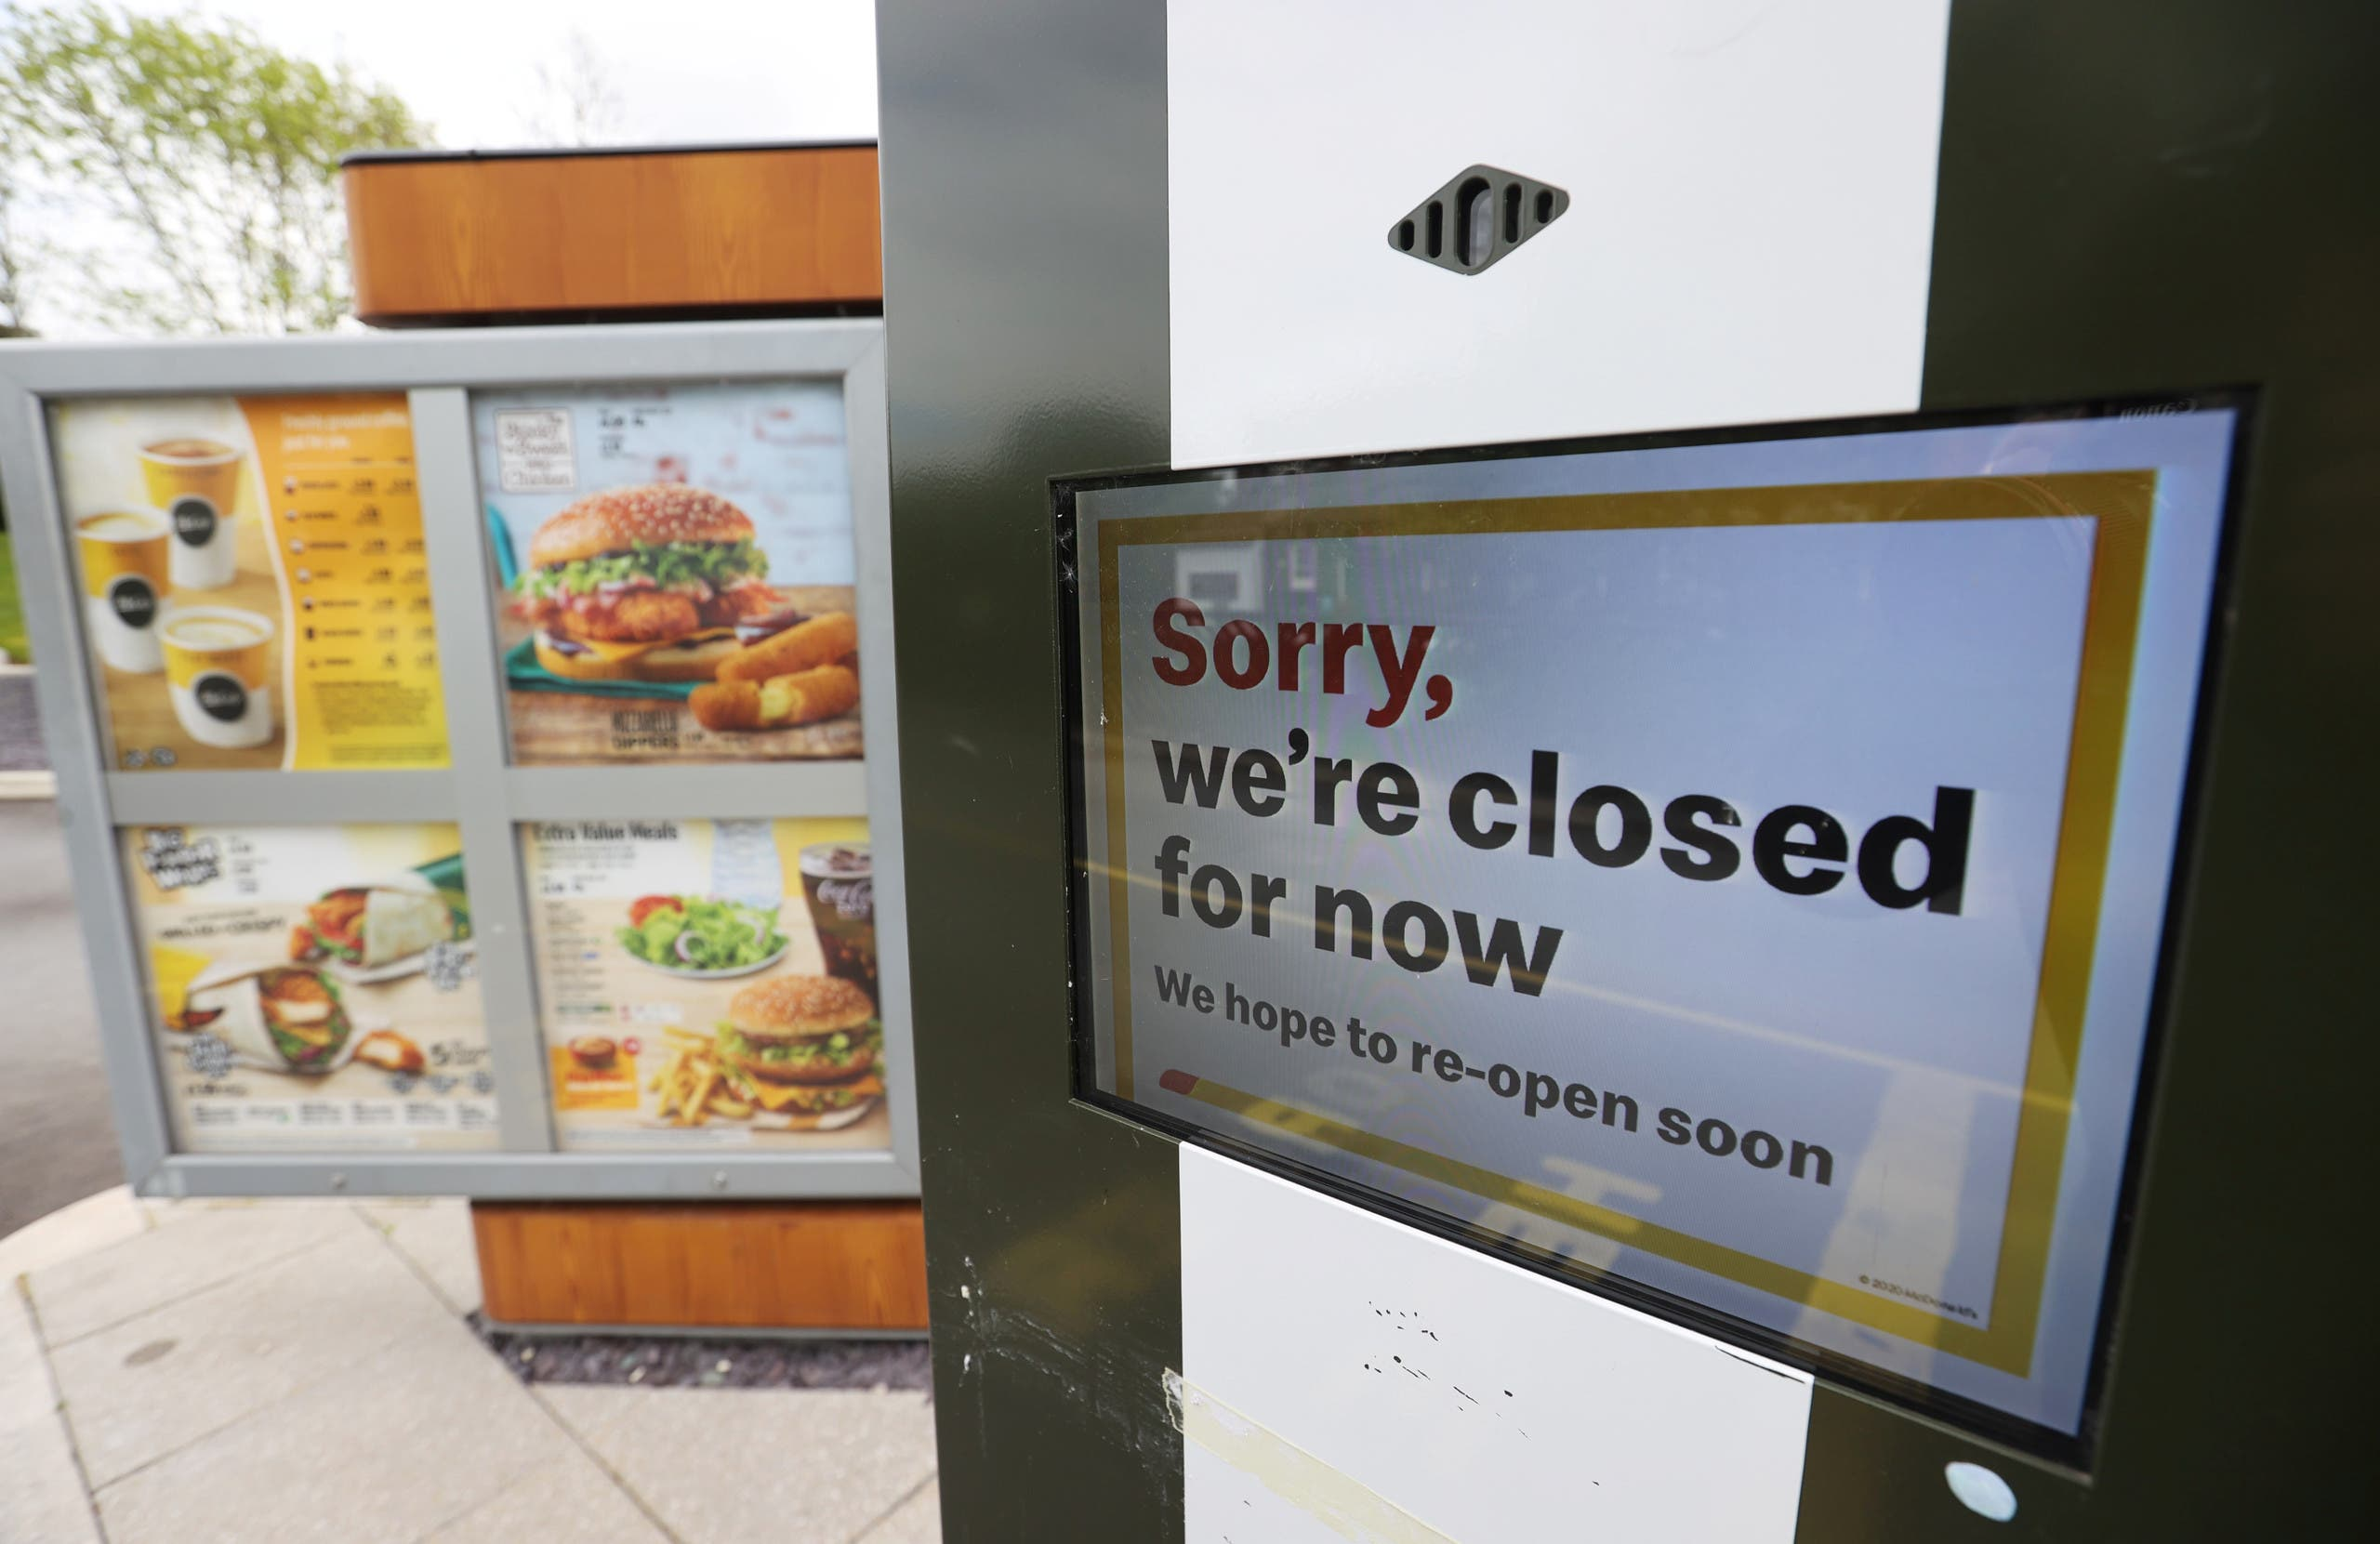 A closed sign is seen at a McDonald's restaurant in Congleton, following the outbreak of the coronavirus disease (COVID-19), Congleton, Britain, May 2, 2020. (Reuters)